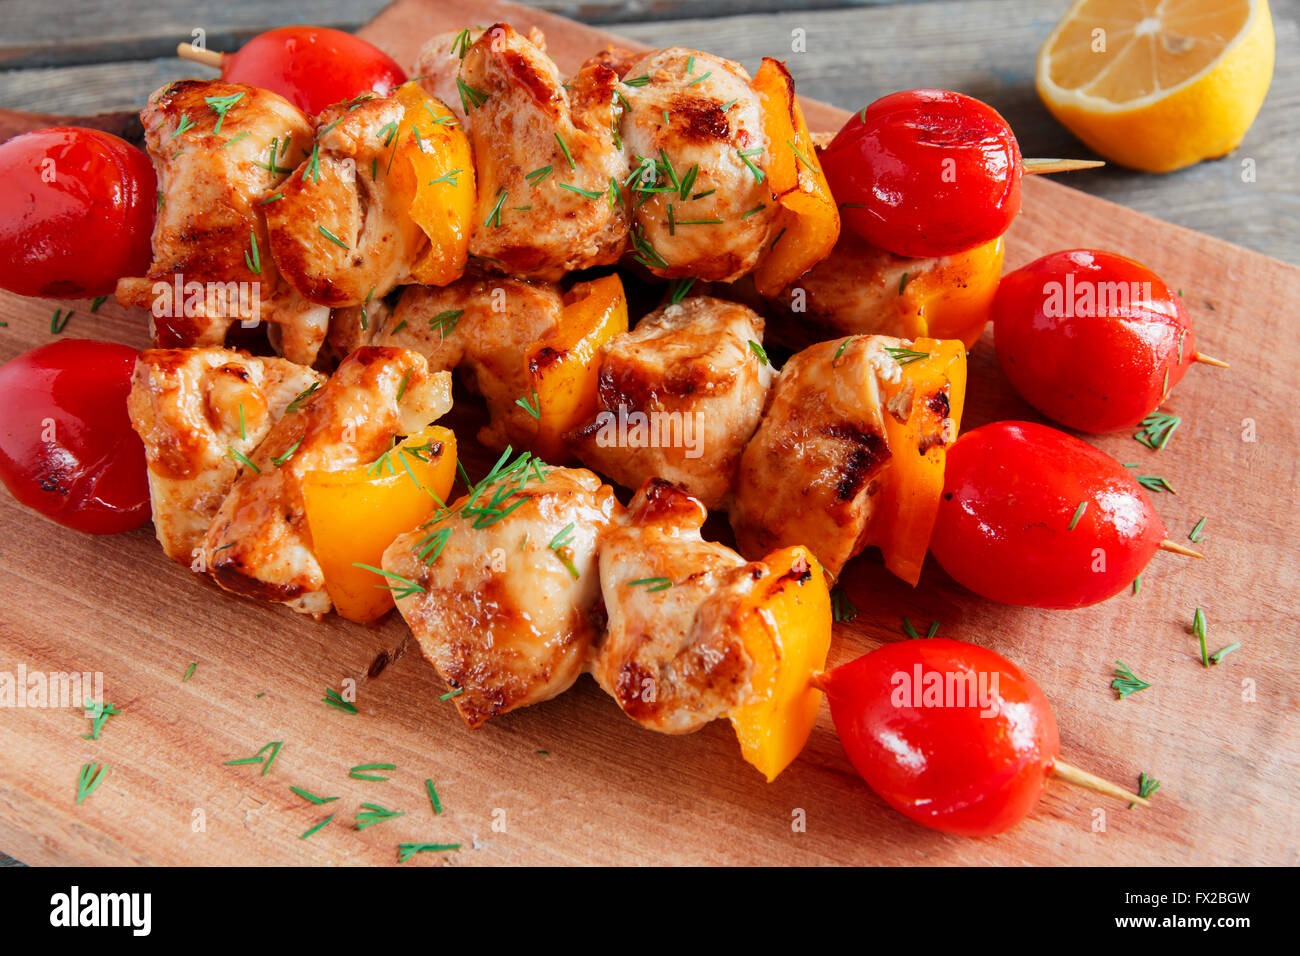 Chicken shish kebab with pepper tomato wooden skewer - Stock Image